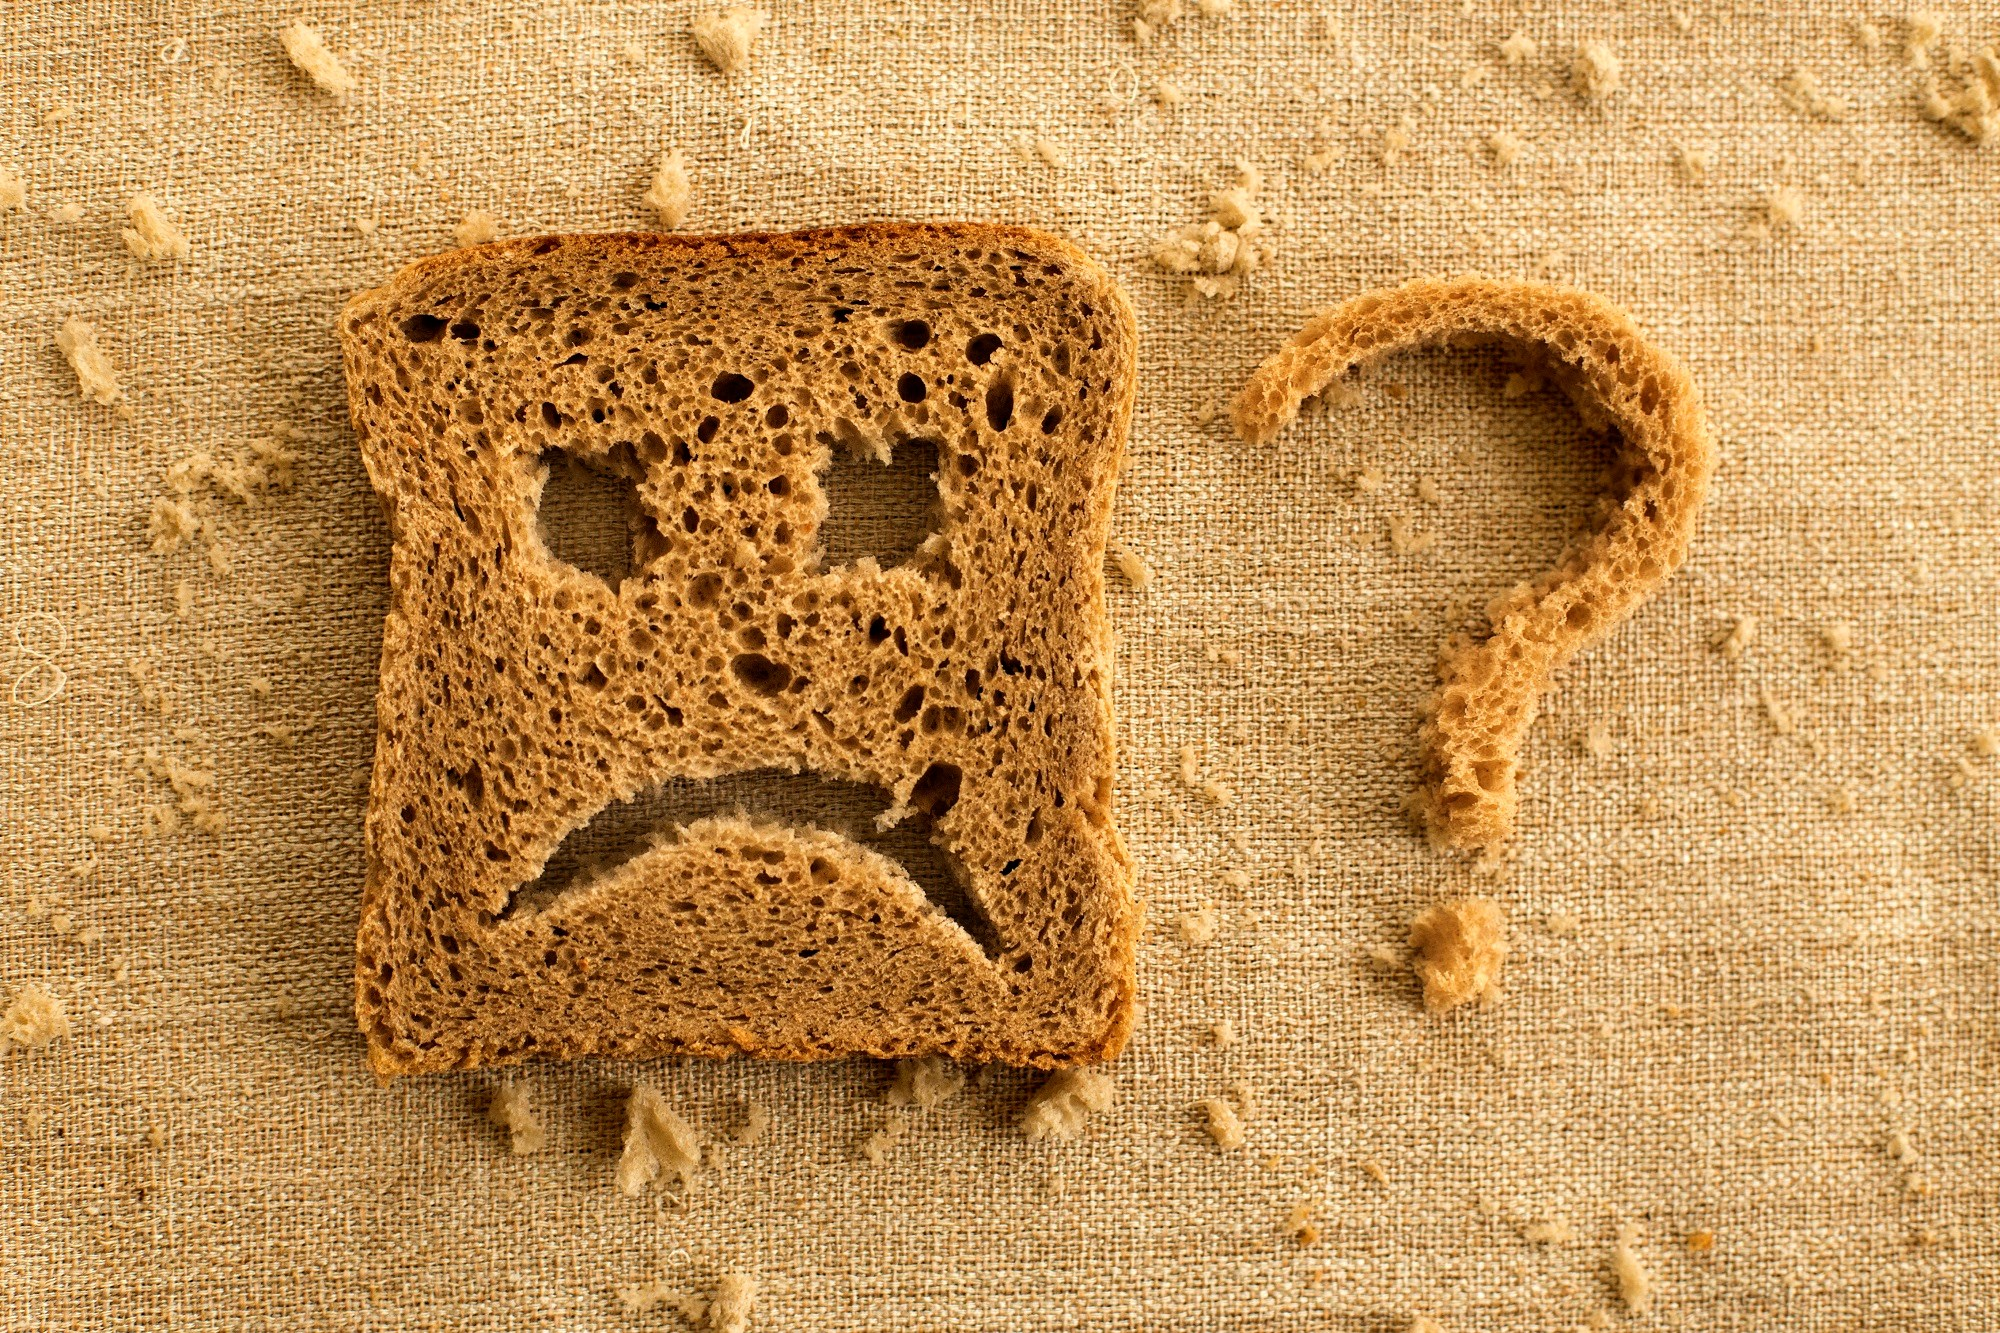 Individuals with diagnosed celiac disease had significantly higher rates of functional dyspepsia.